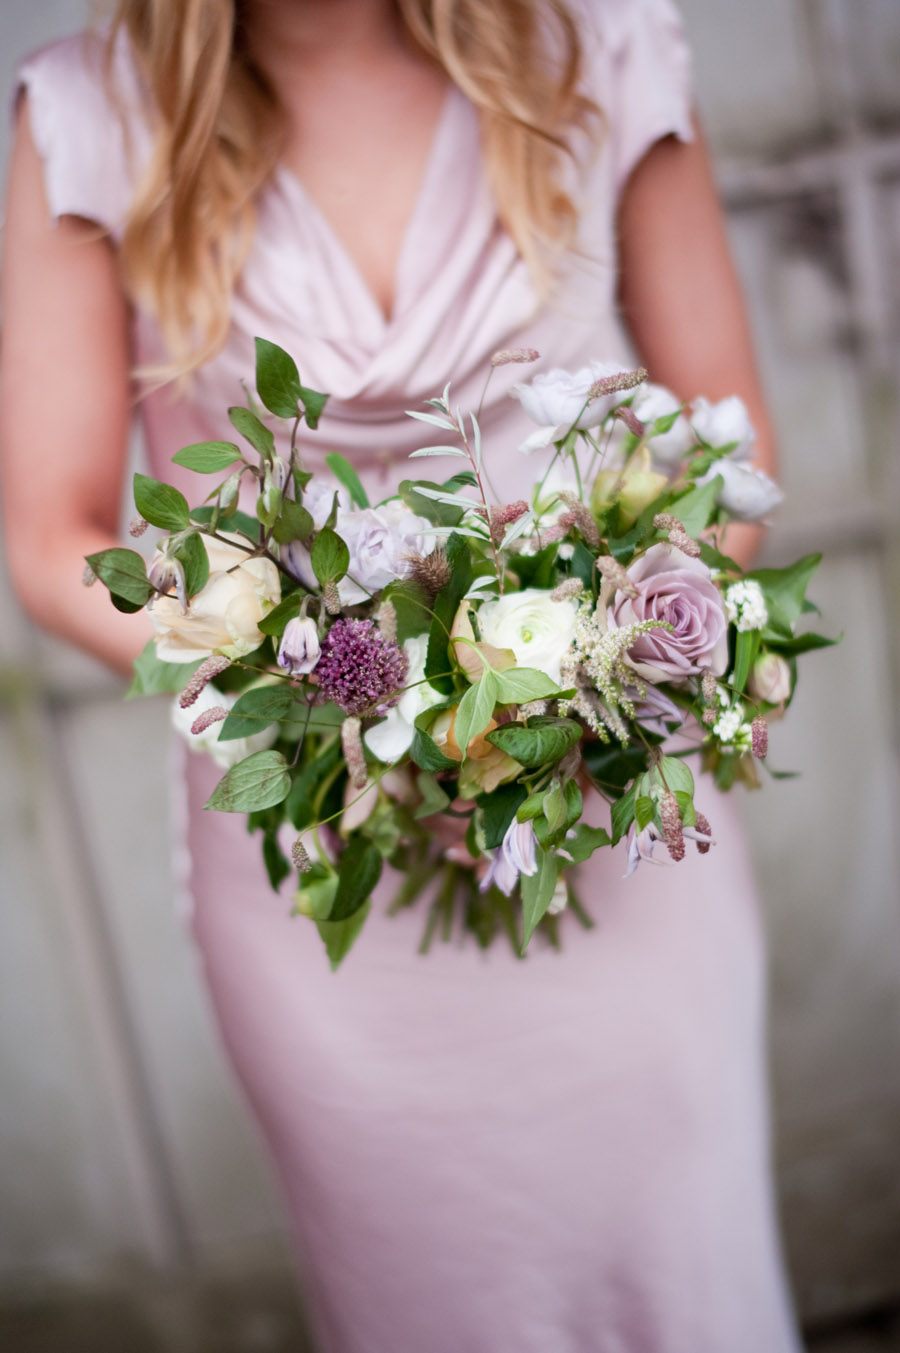 Luxe, modern wedding style ideas by Natalie Hewitt, image credit Rachael Connerton Photography (22)